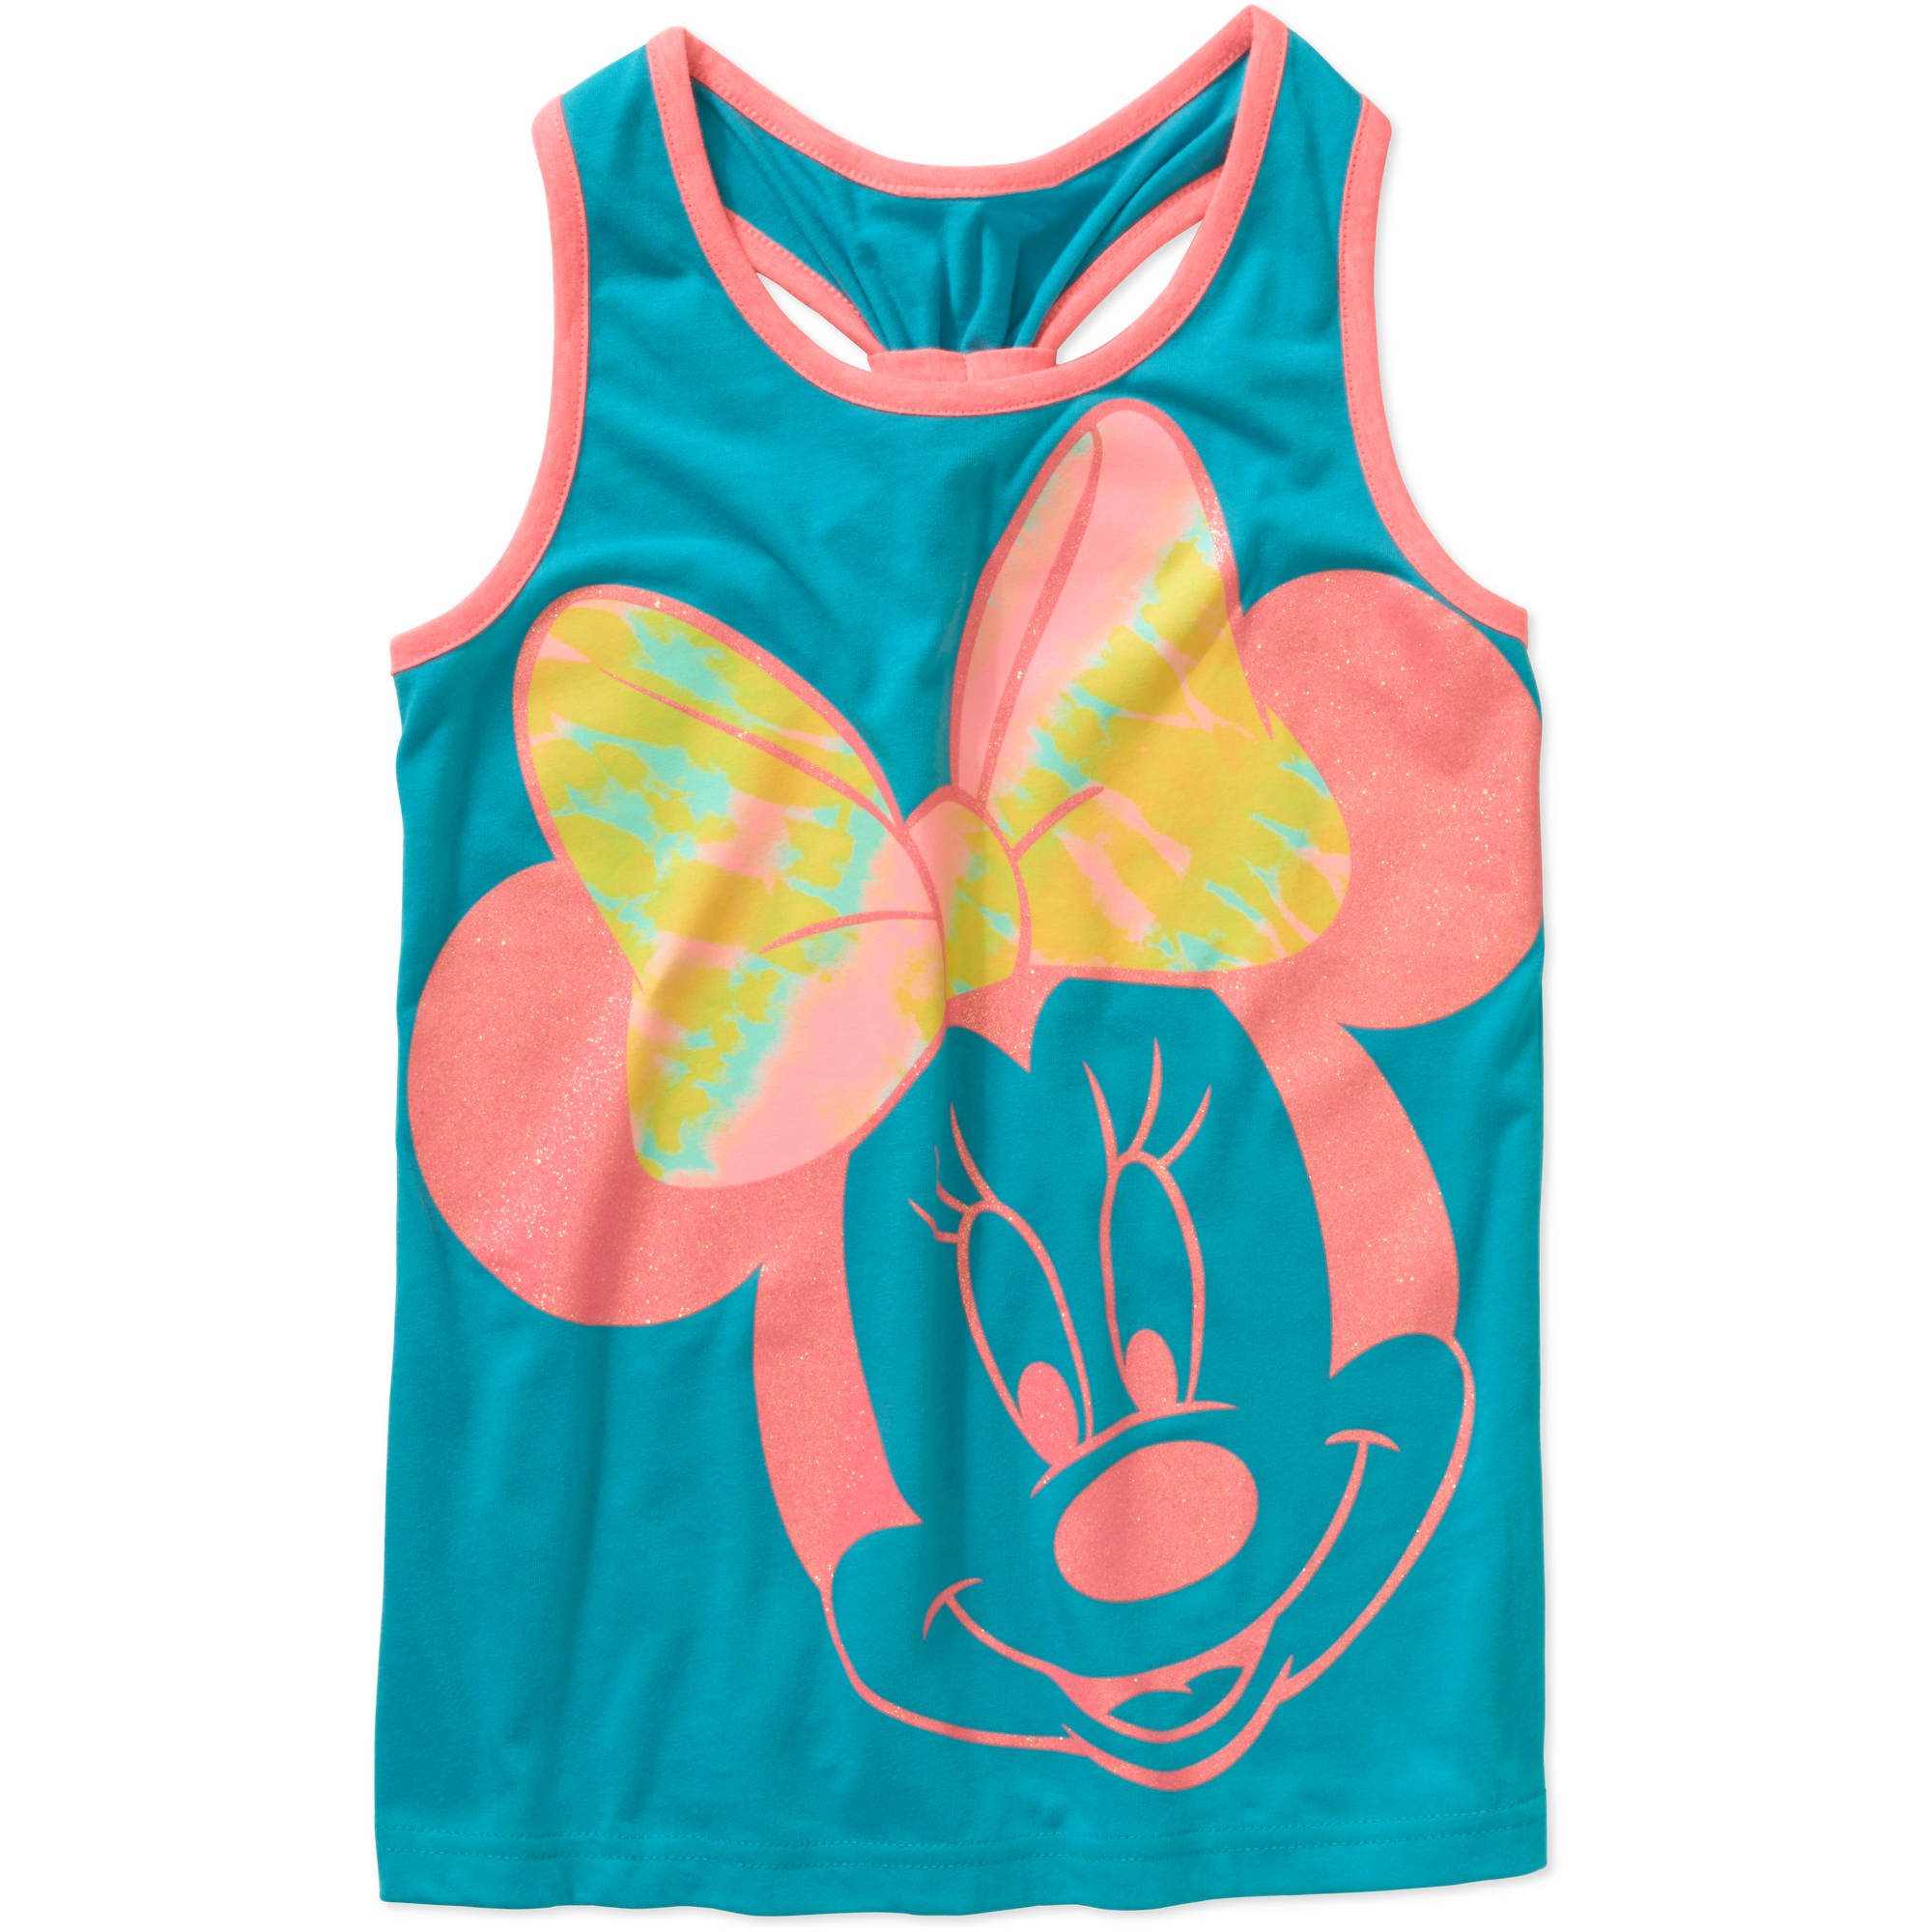 Minnie Mouse Girls' Banded Racerback Graphic Tank